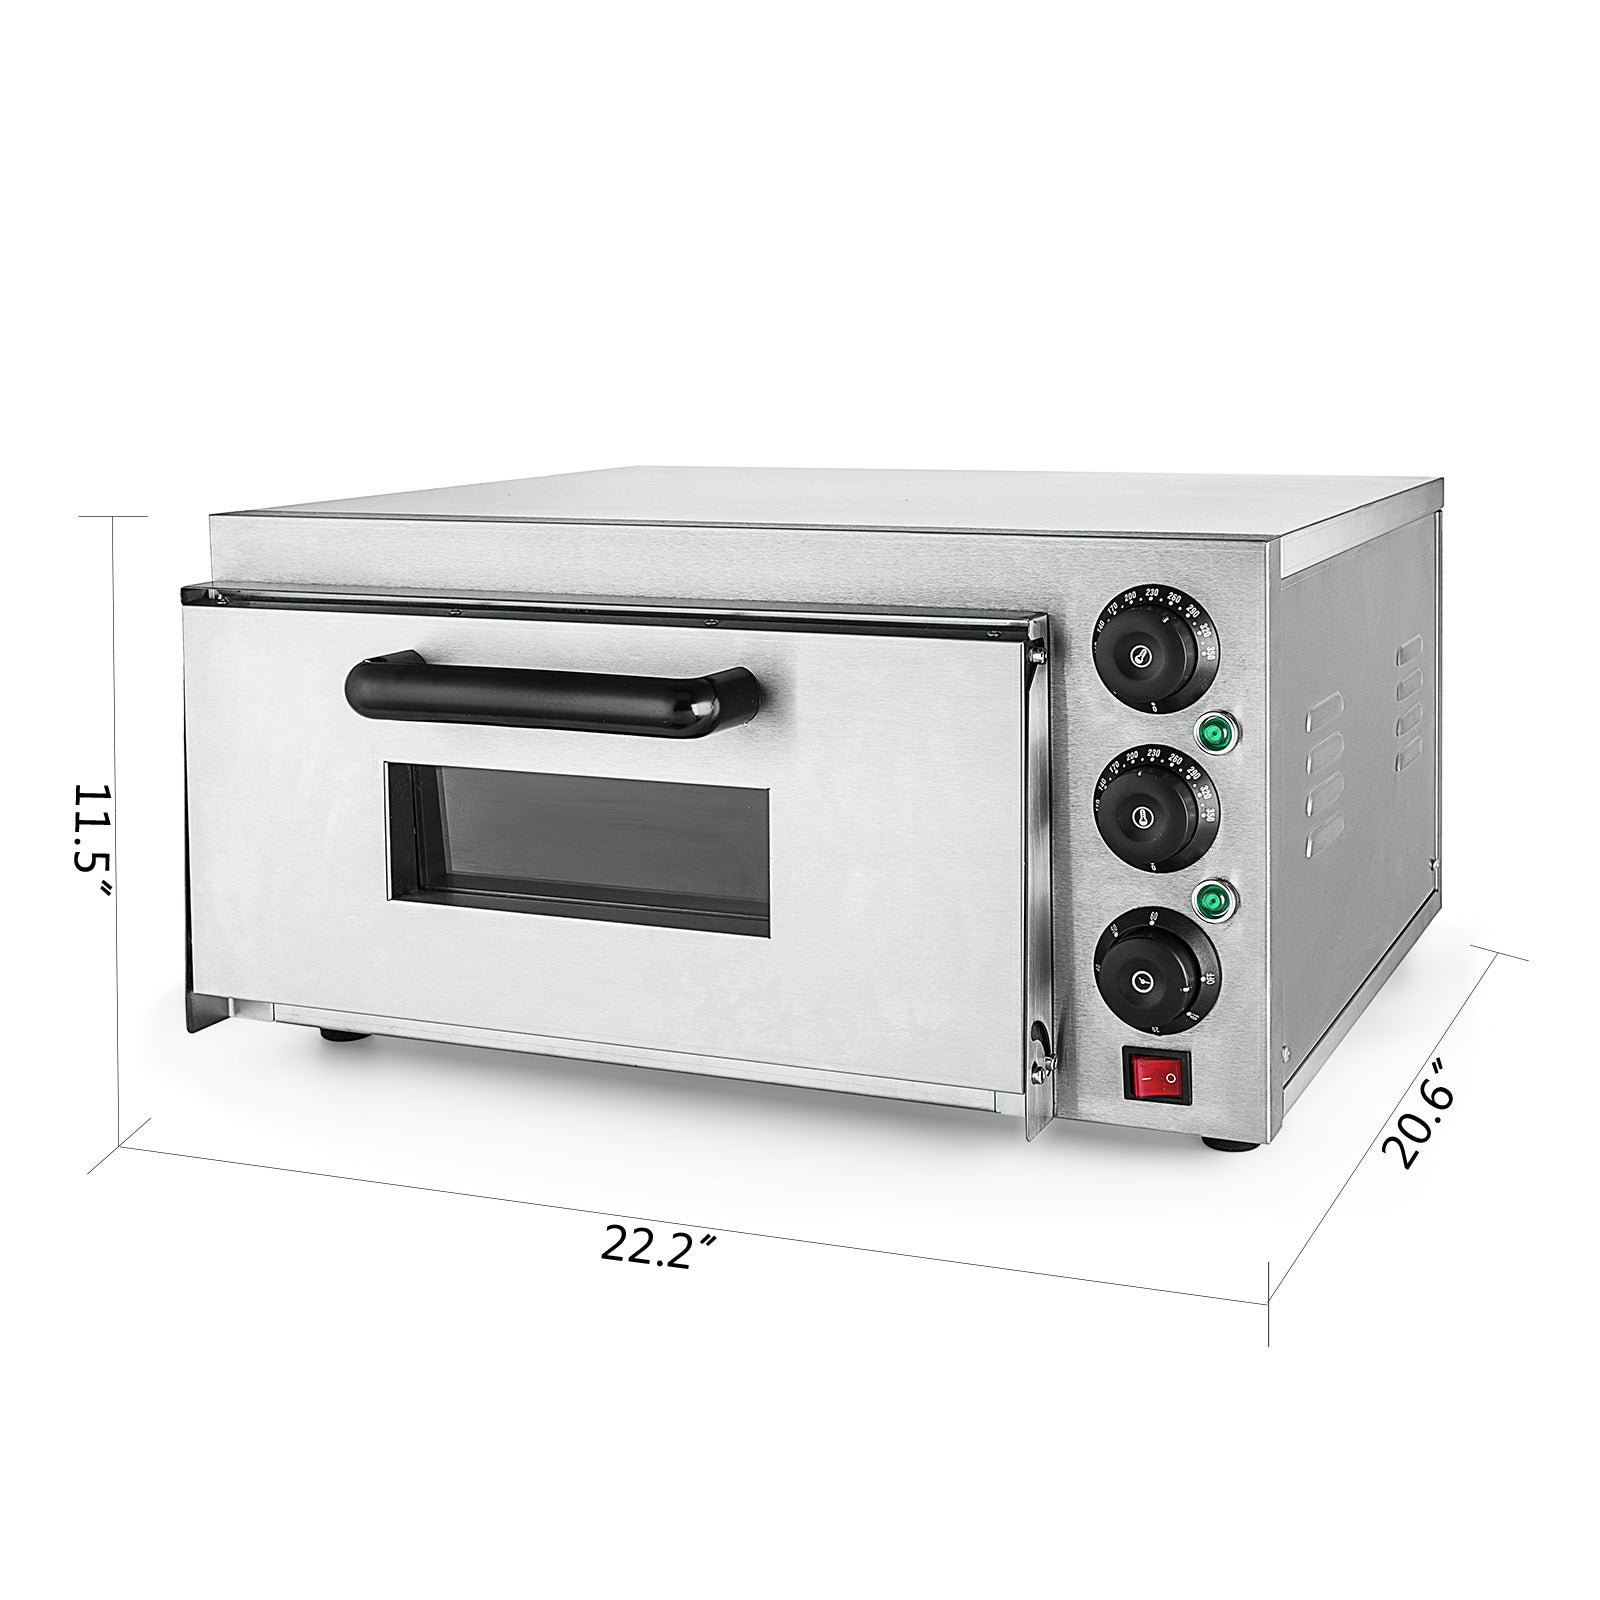 Electric 2000w Pizza Oven Single Deck Baking Oven Restaurant Stainless Steel